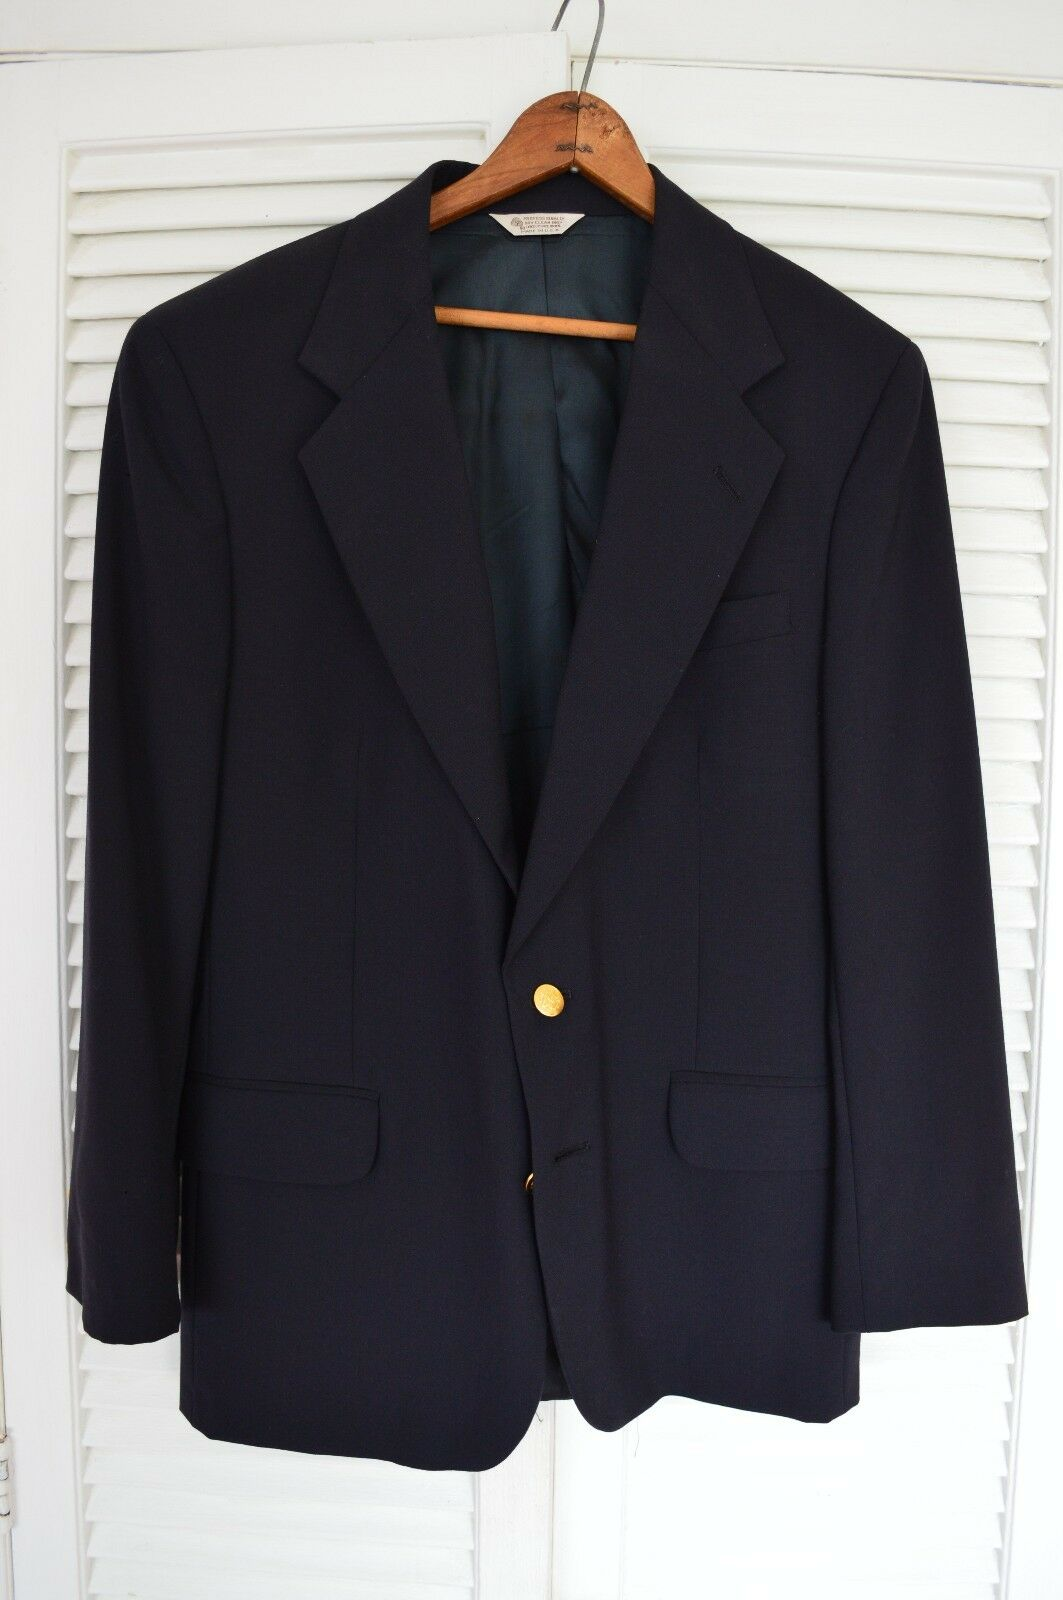 Christopher Hayes 42R Sport coat Macy's Navy bluee gold Buttons